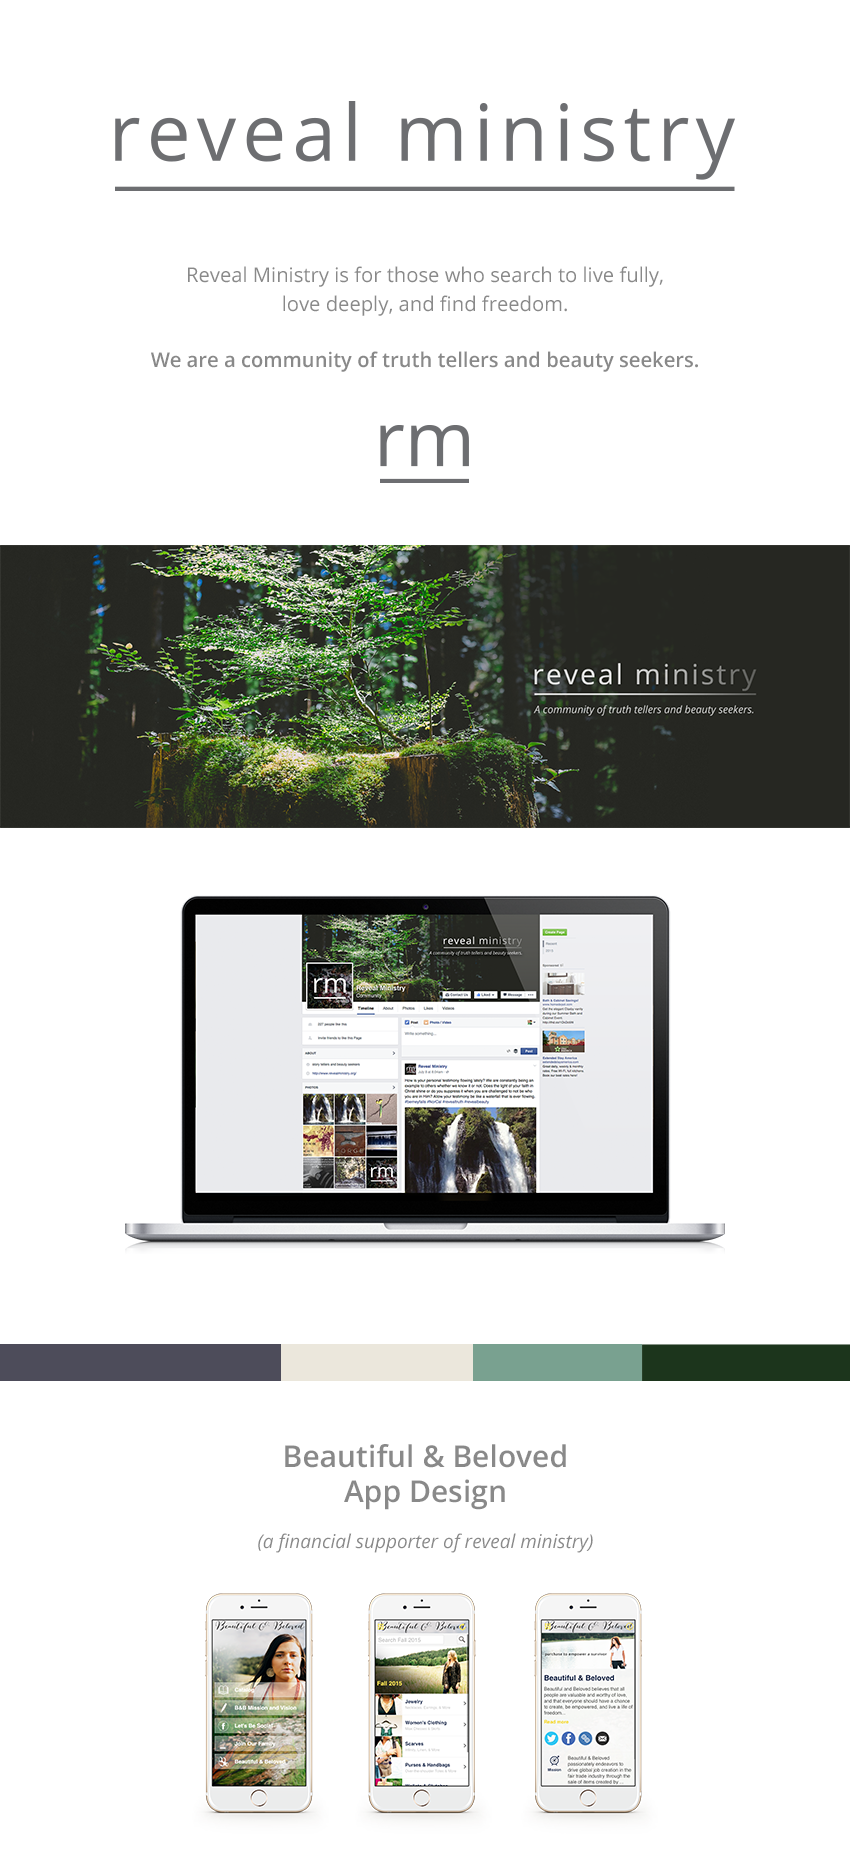 Reveal Ministry brand design by Finicky Designs